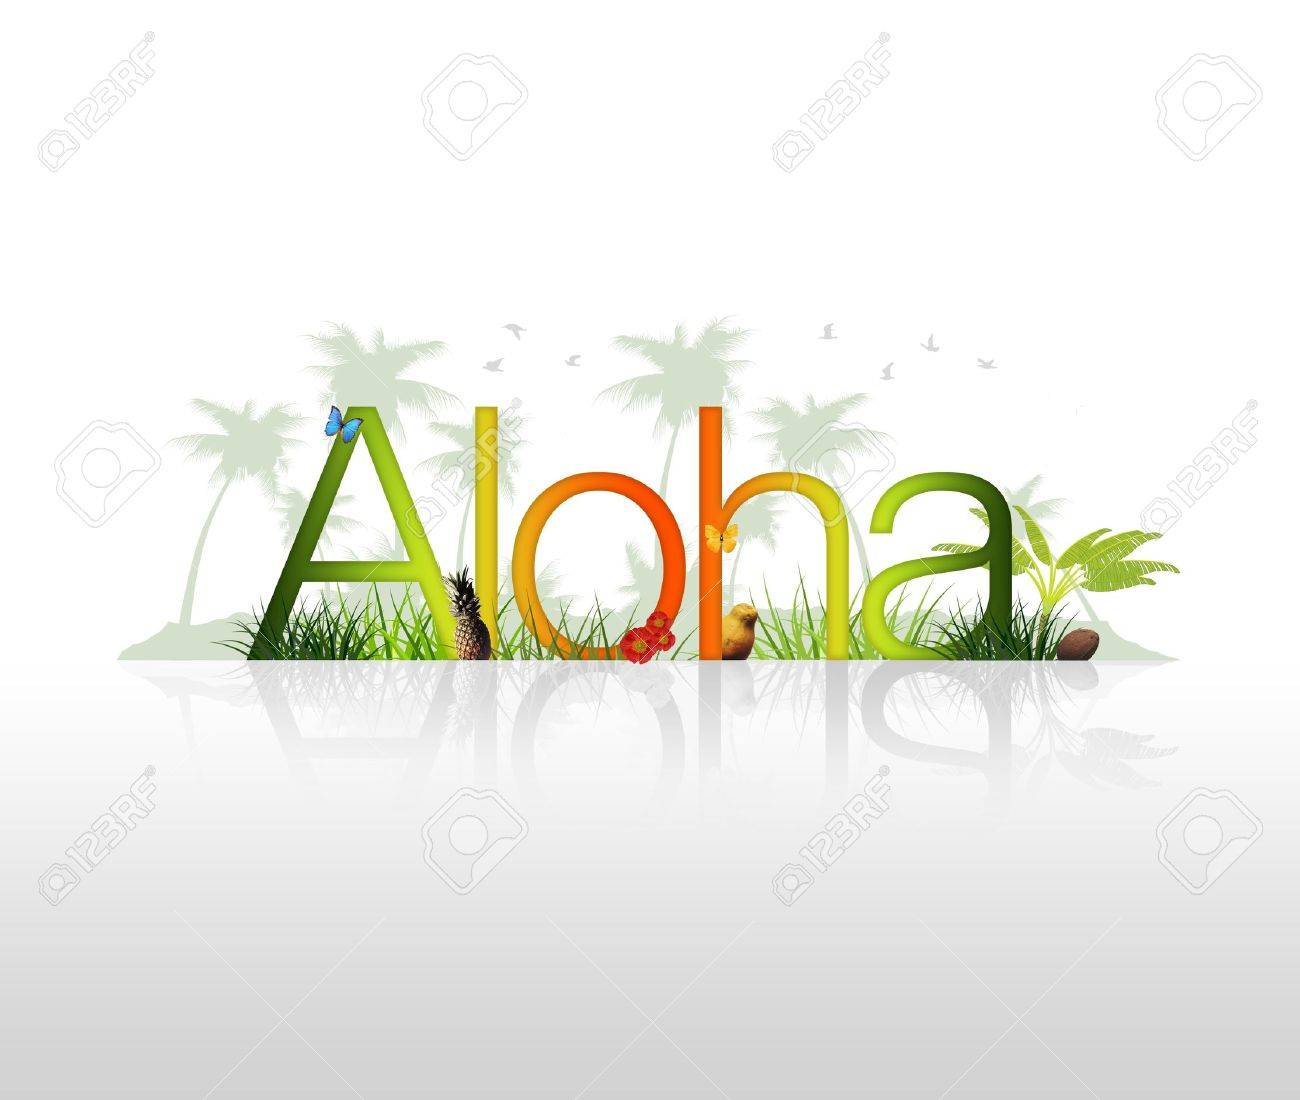 High Resolution graphic of the word Aloha with tropical elements